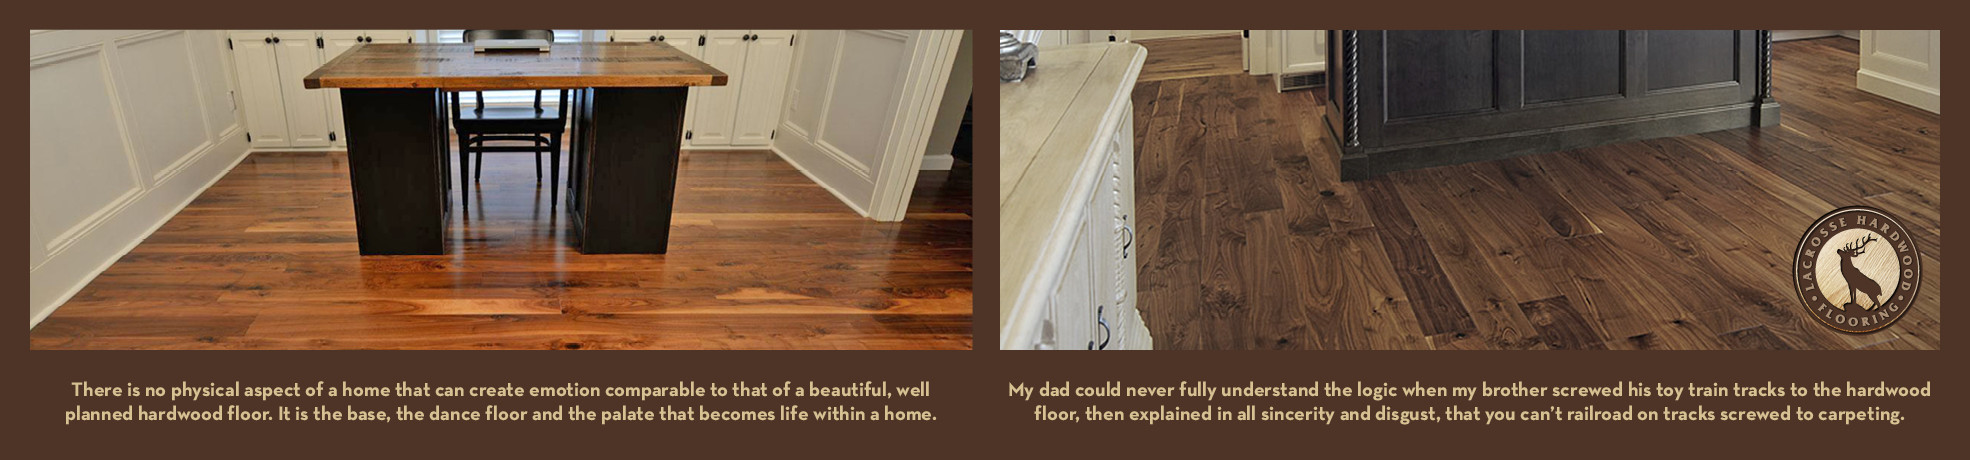 hardwood floor estimate sheet of lacrosse hardwood flooring walnut white oak red oak hickory intended for lhfsliderv22